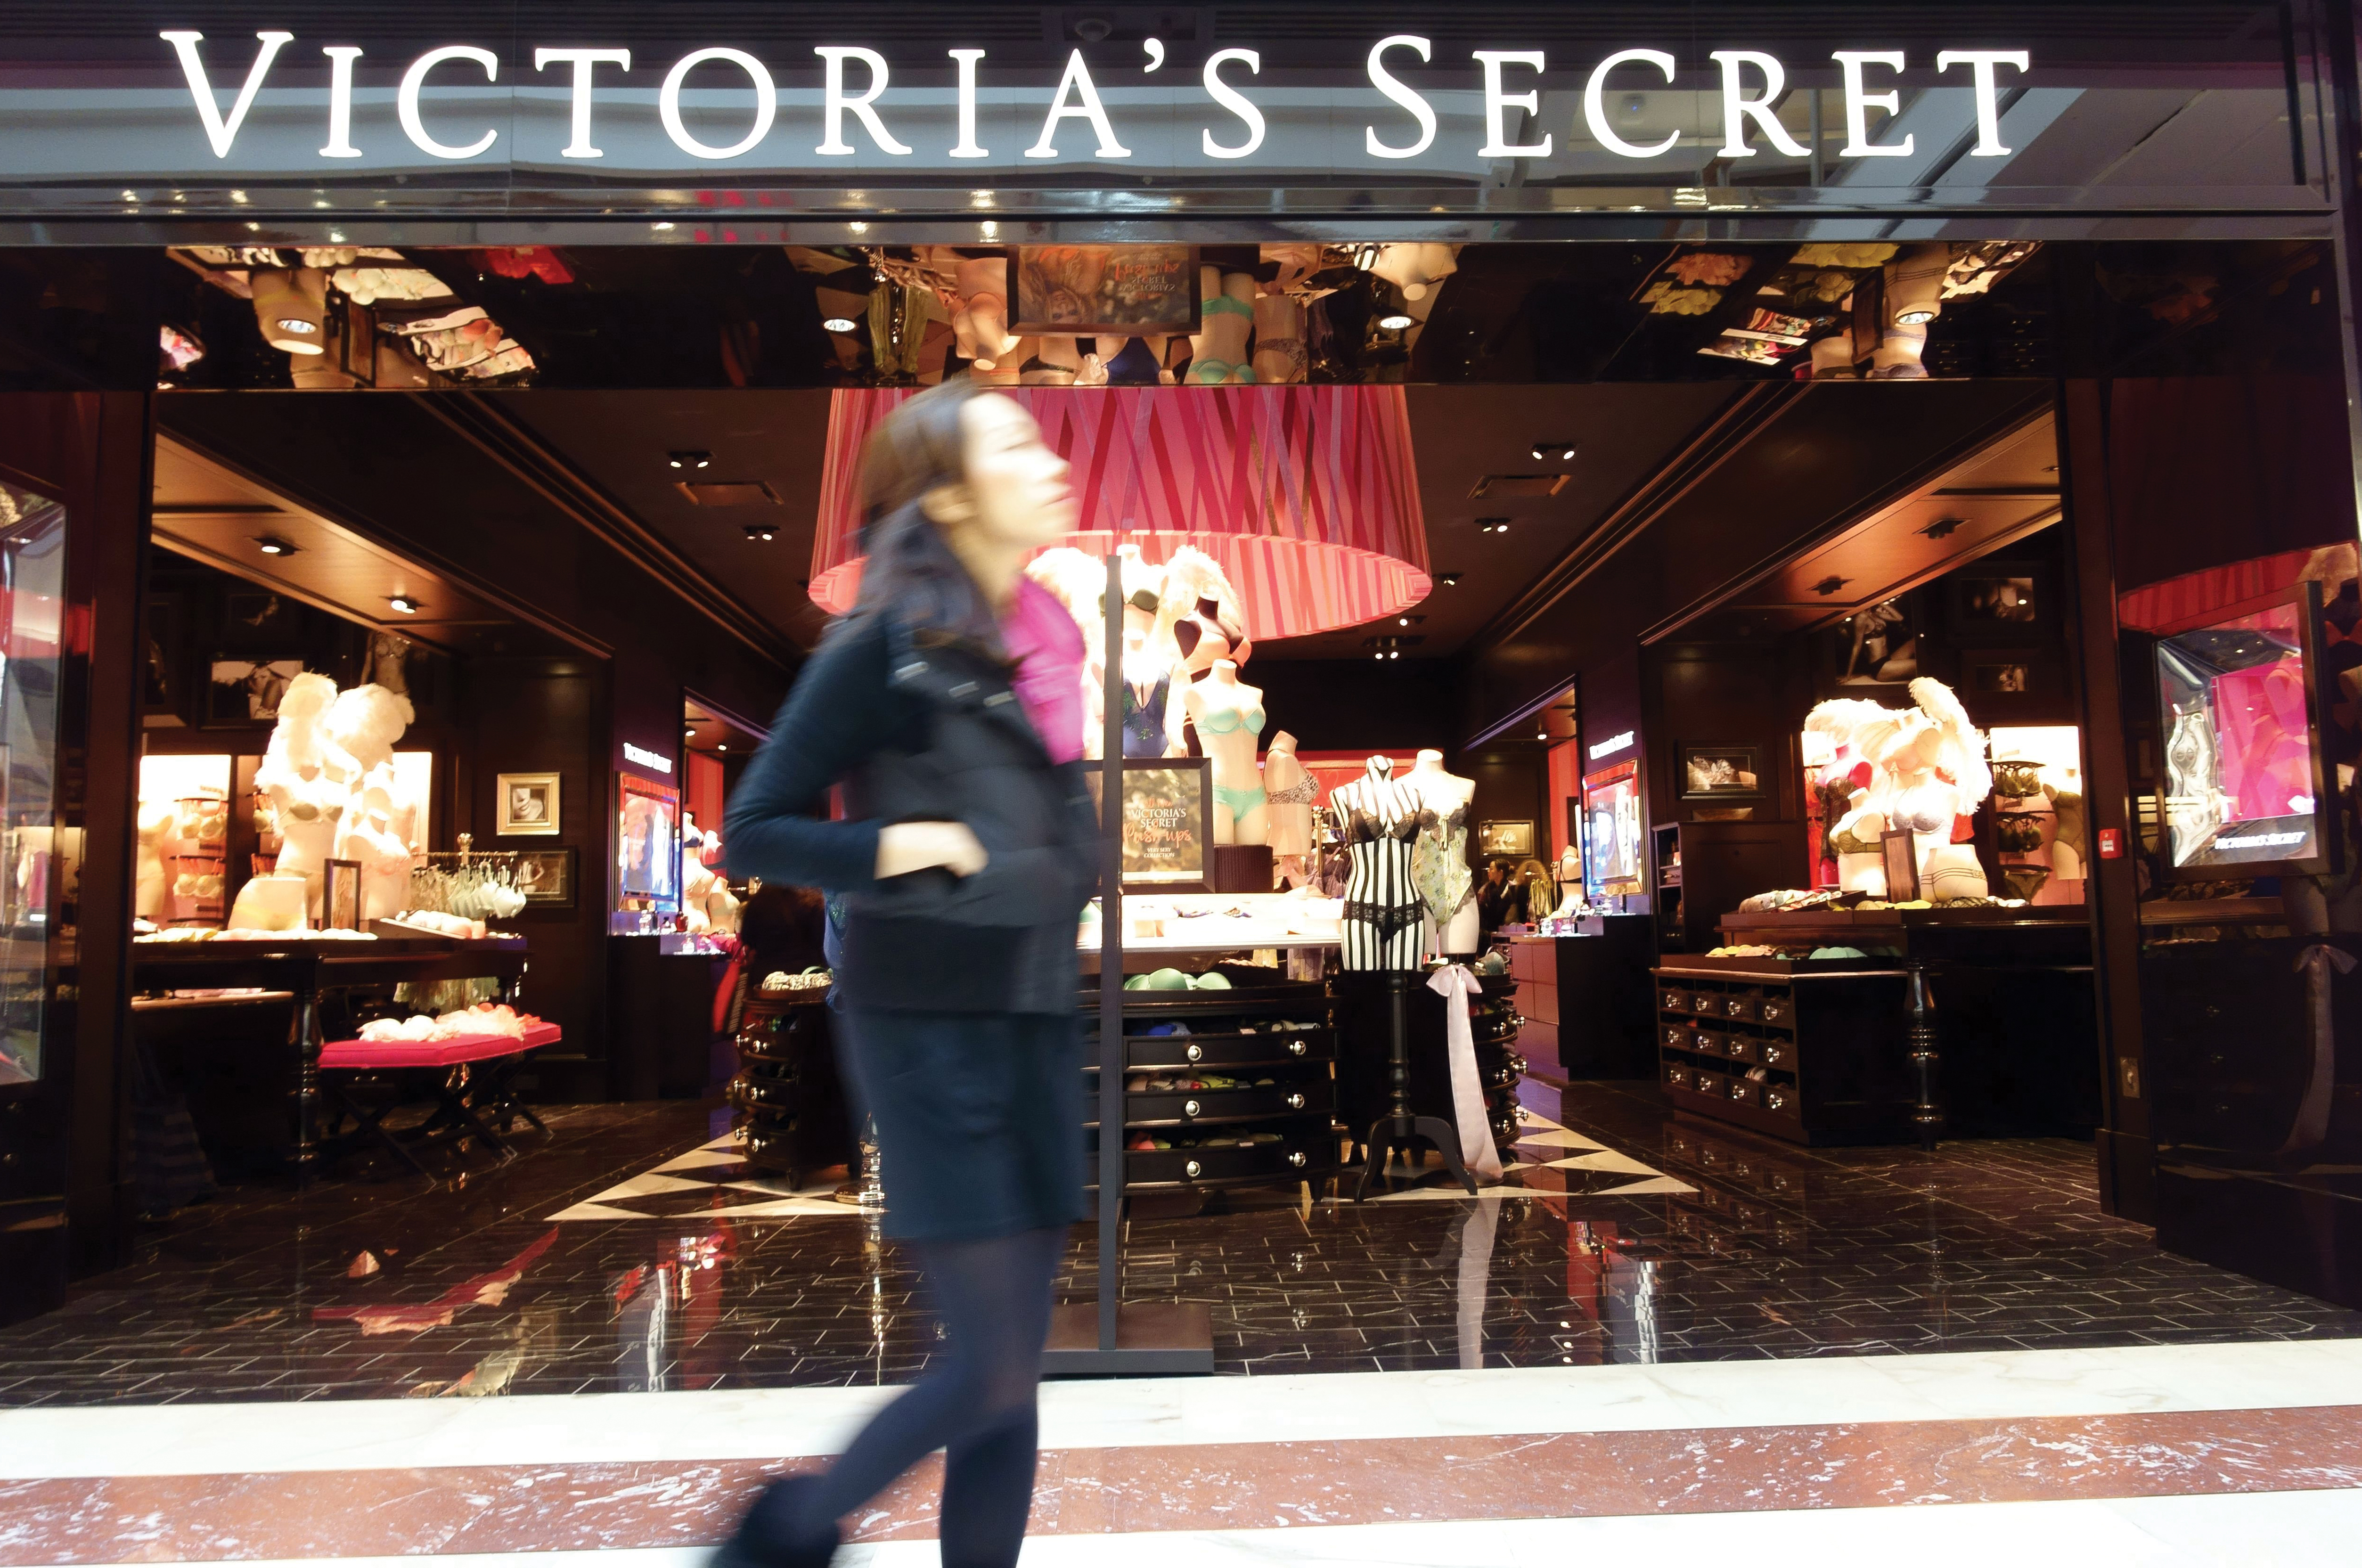 The renovated Victoria's Secret store on New Bond Street in London.